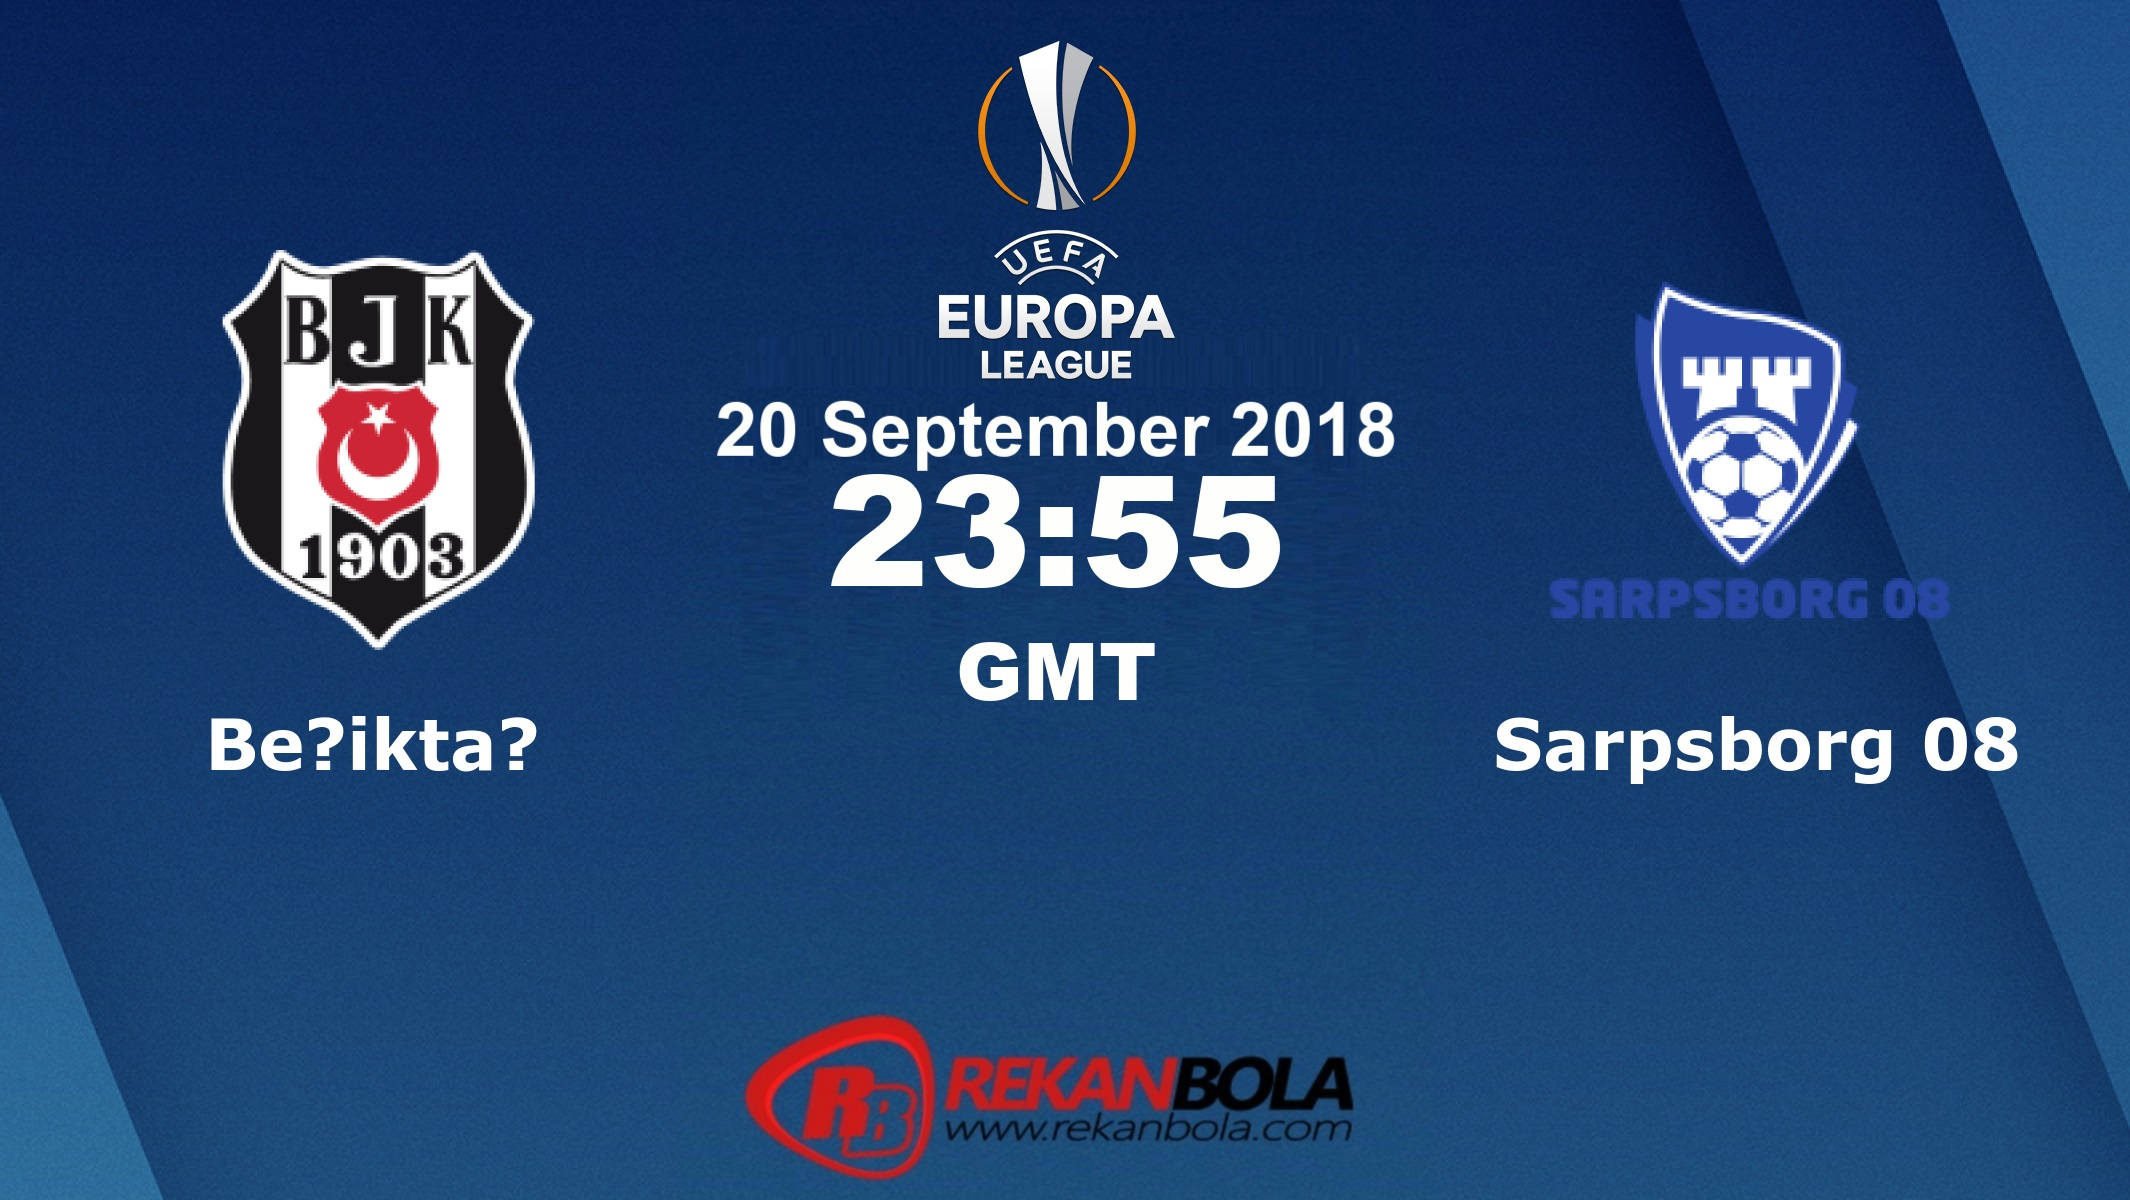 Nonton Siaran Live Streaming Beşiktaş Vs Sarpsborg 20 September 2018